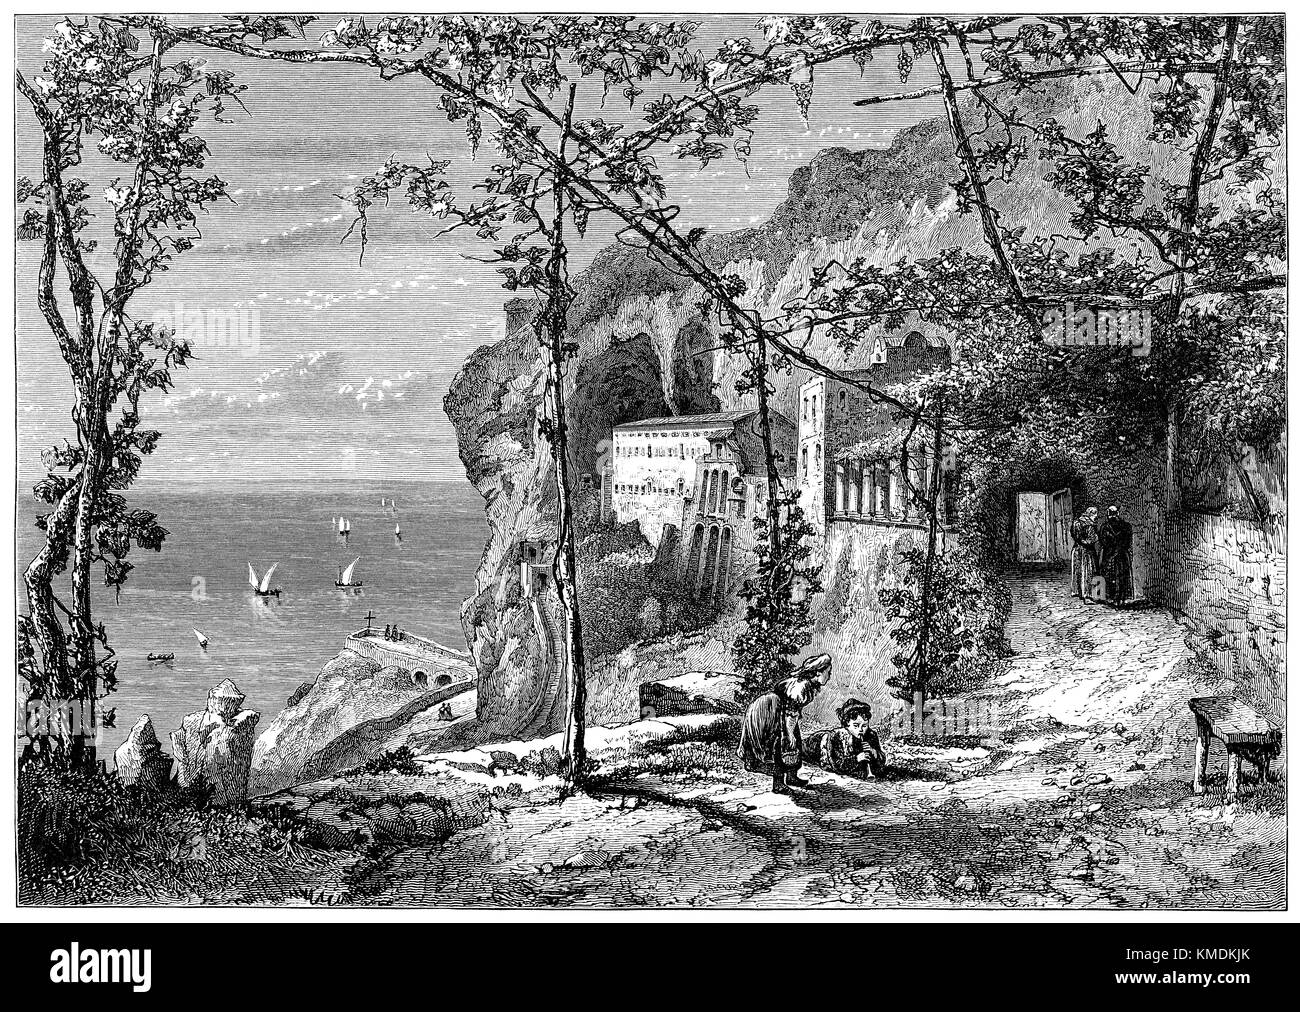 19th century wood engraving of Amalfi in Italy. From an illustration by R.P. Leitch. - Stock Image